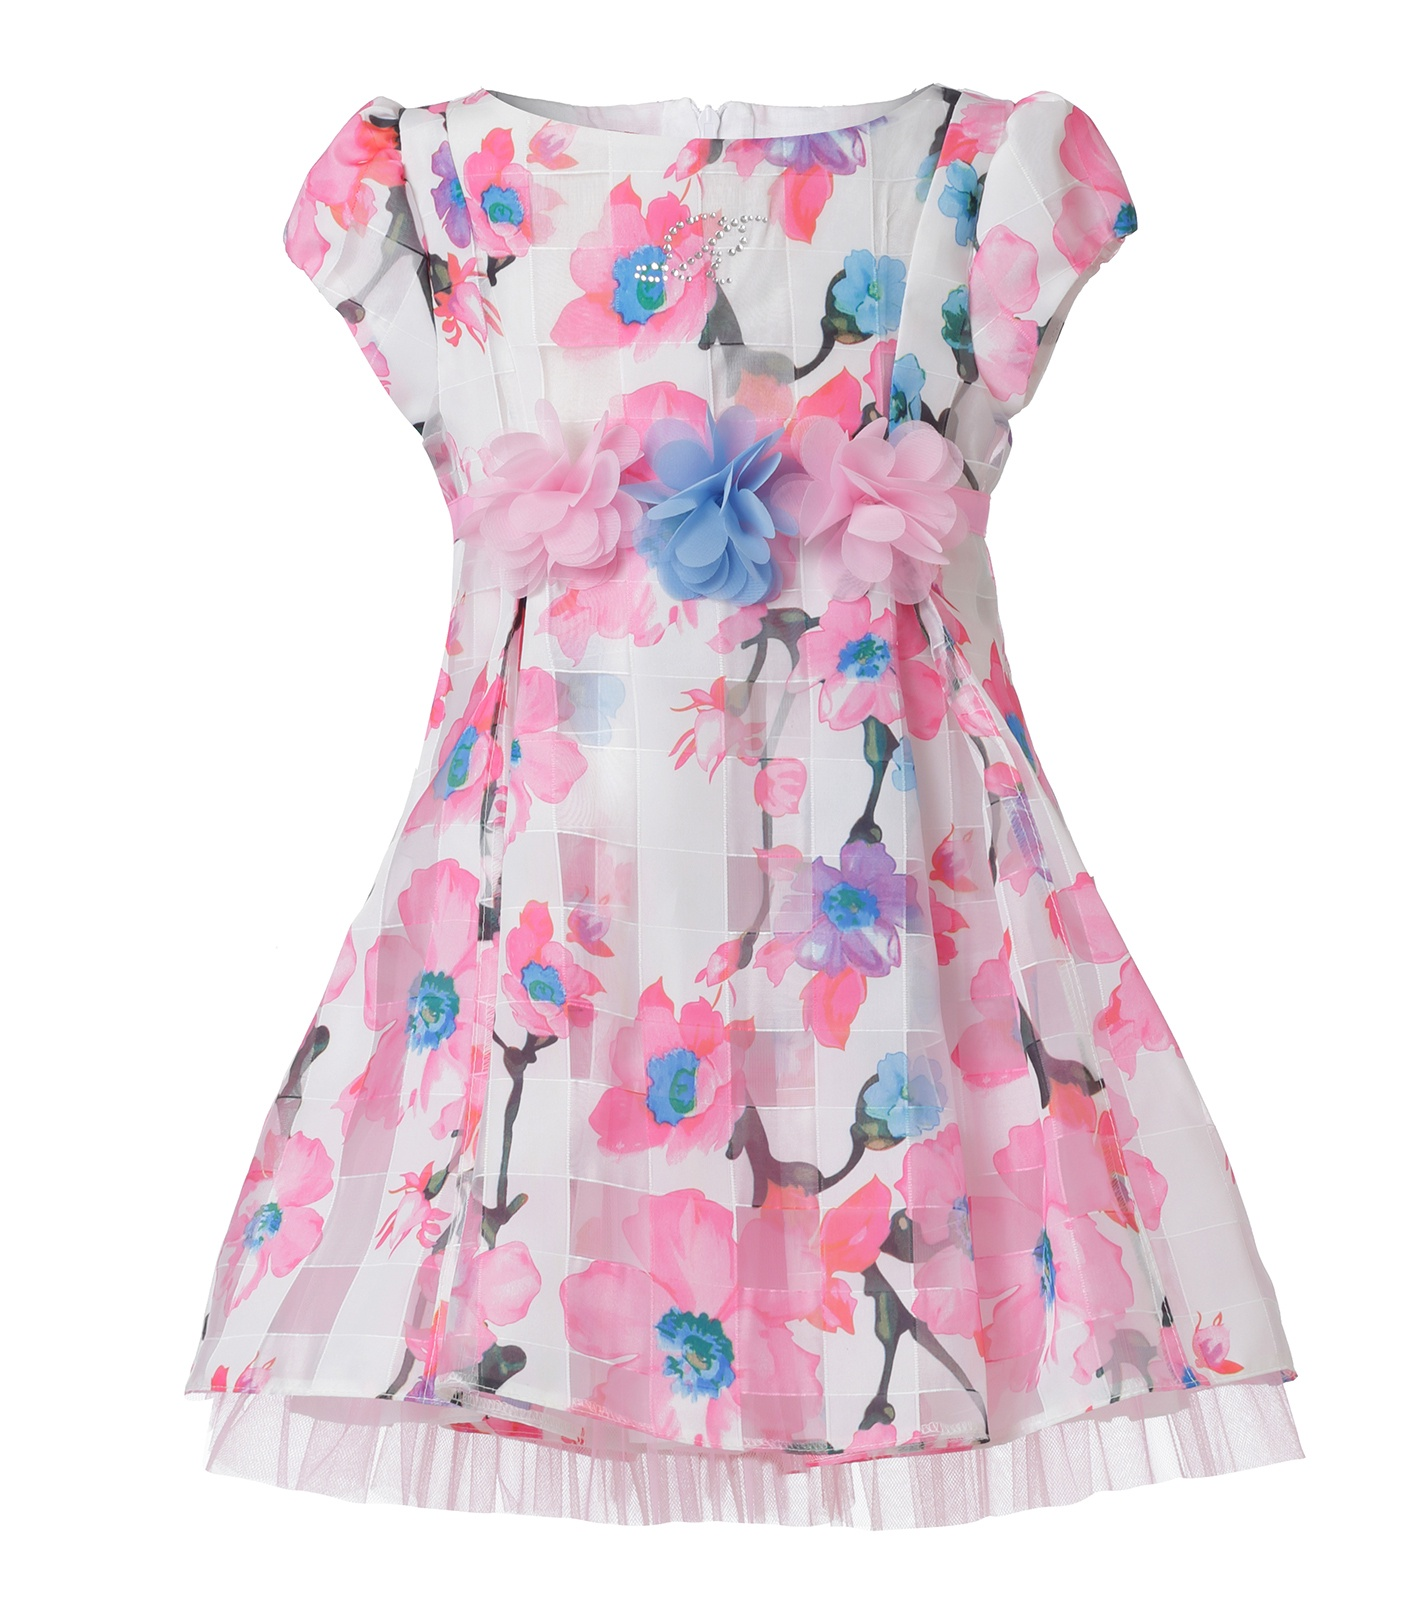 61rbg109 Dress White With Pink Baby Blue Flowers Mini Raxevsky